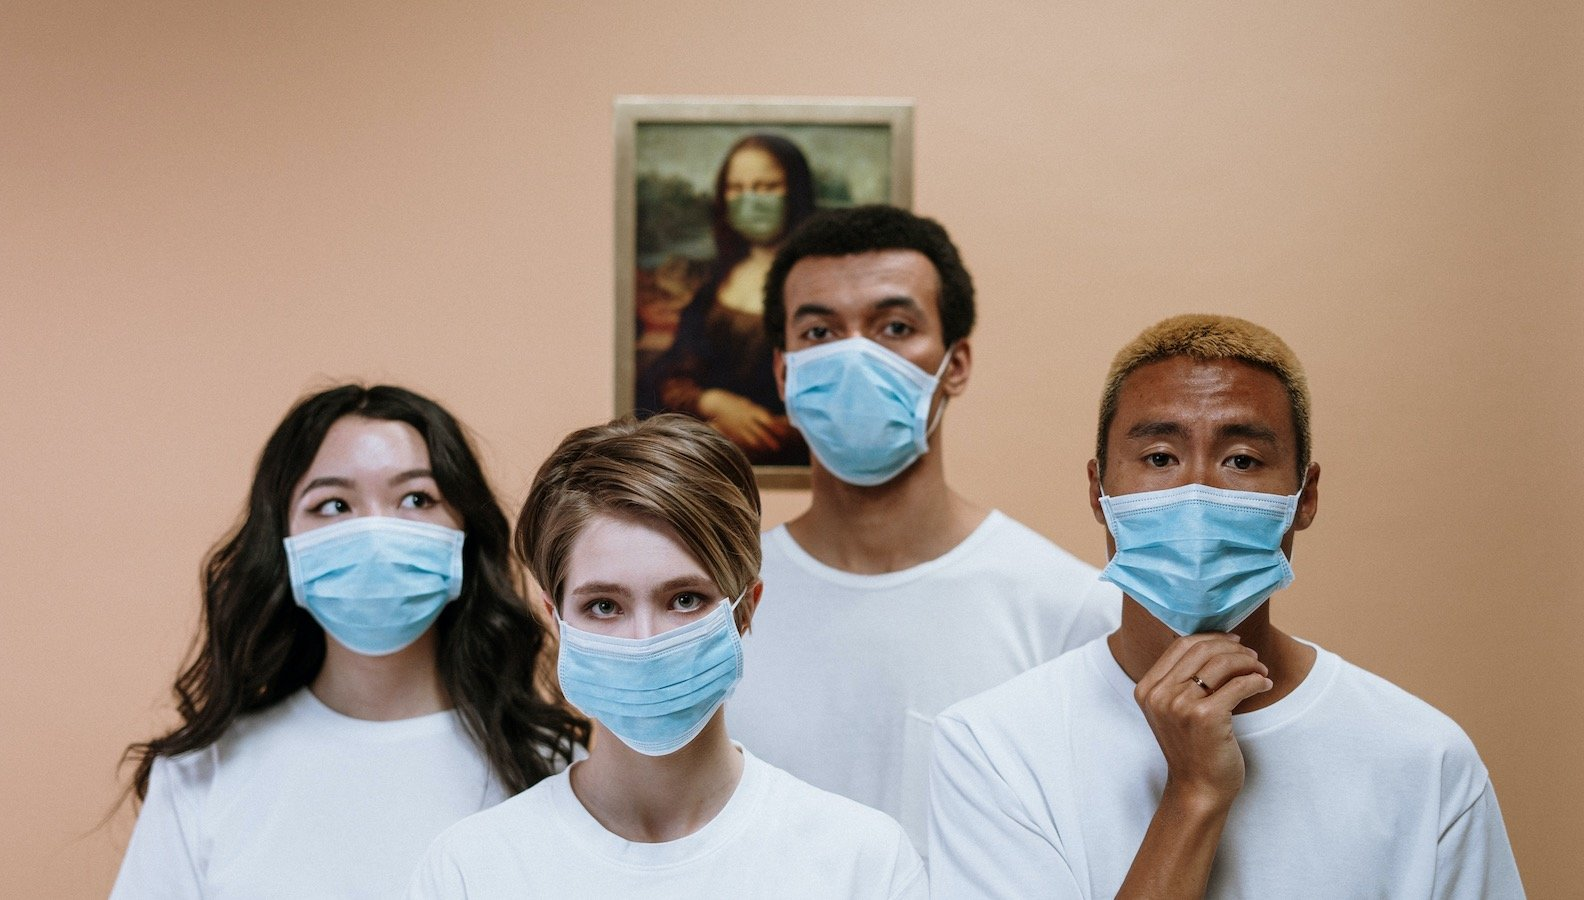 No, masks don't prevent oxygen from passing through